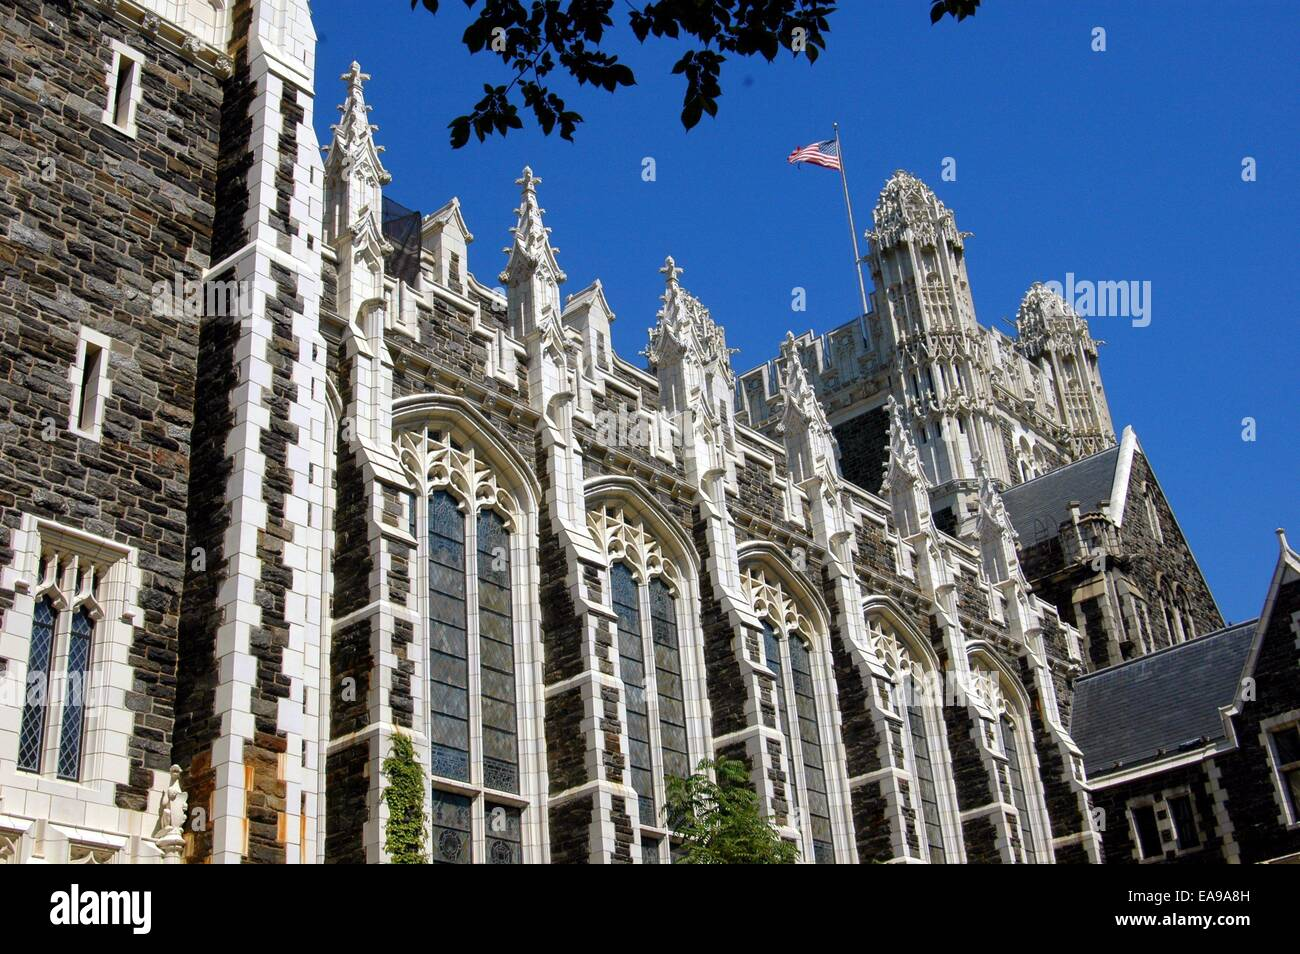 nyc flamboyant english neo gothic buildings at the city college of